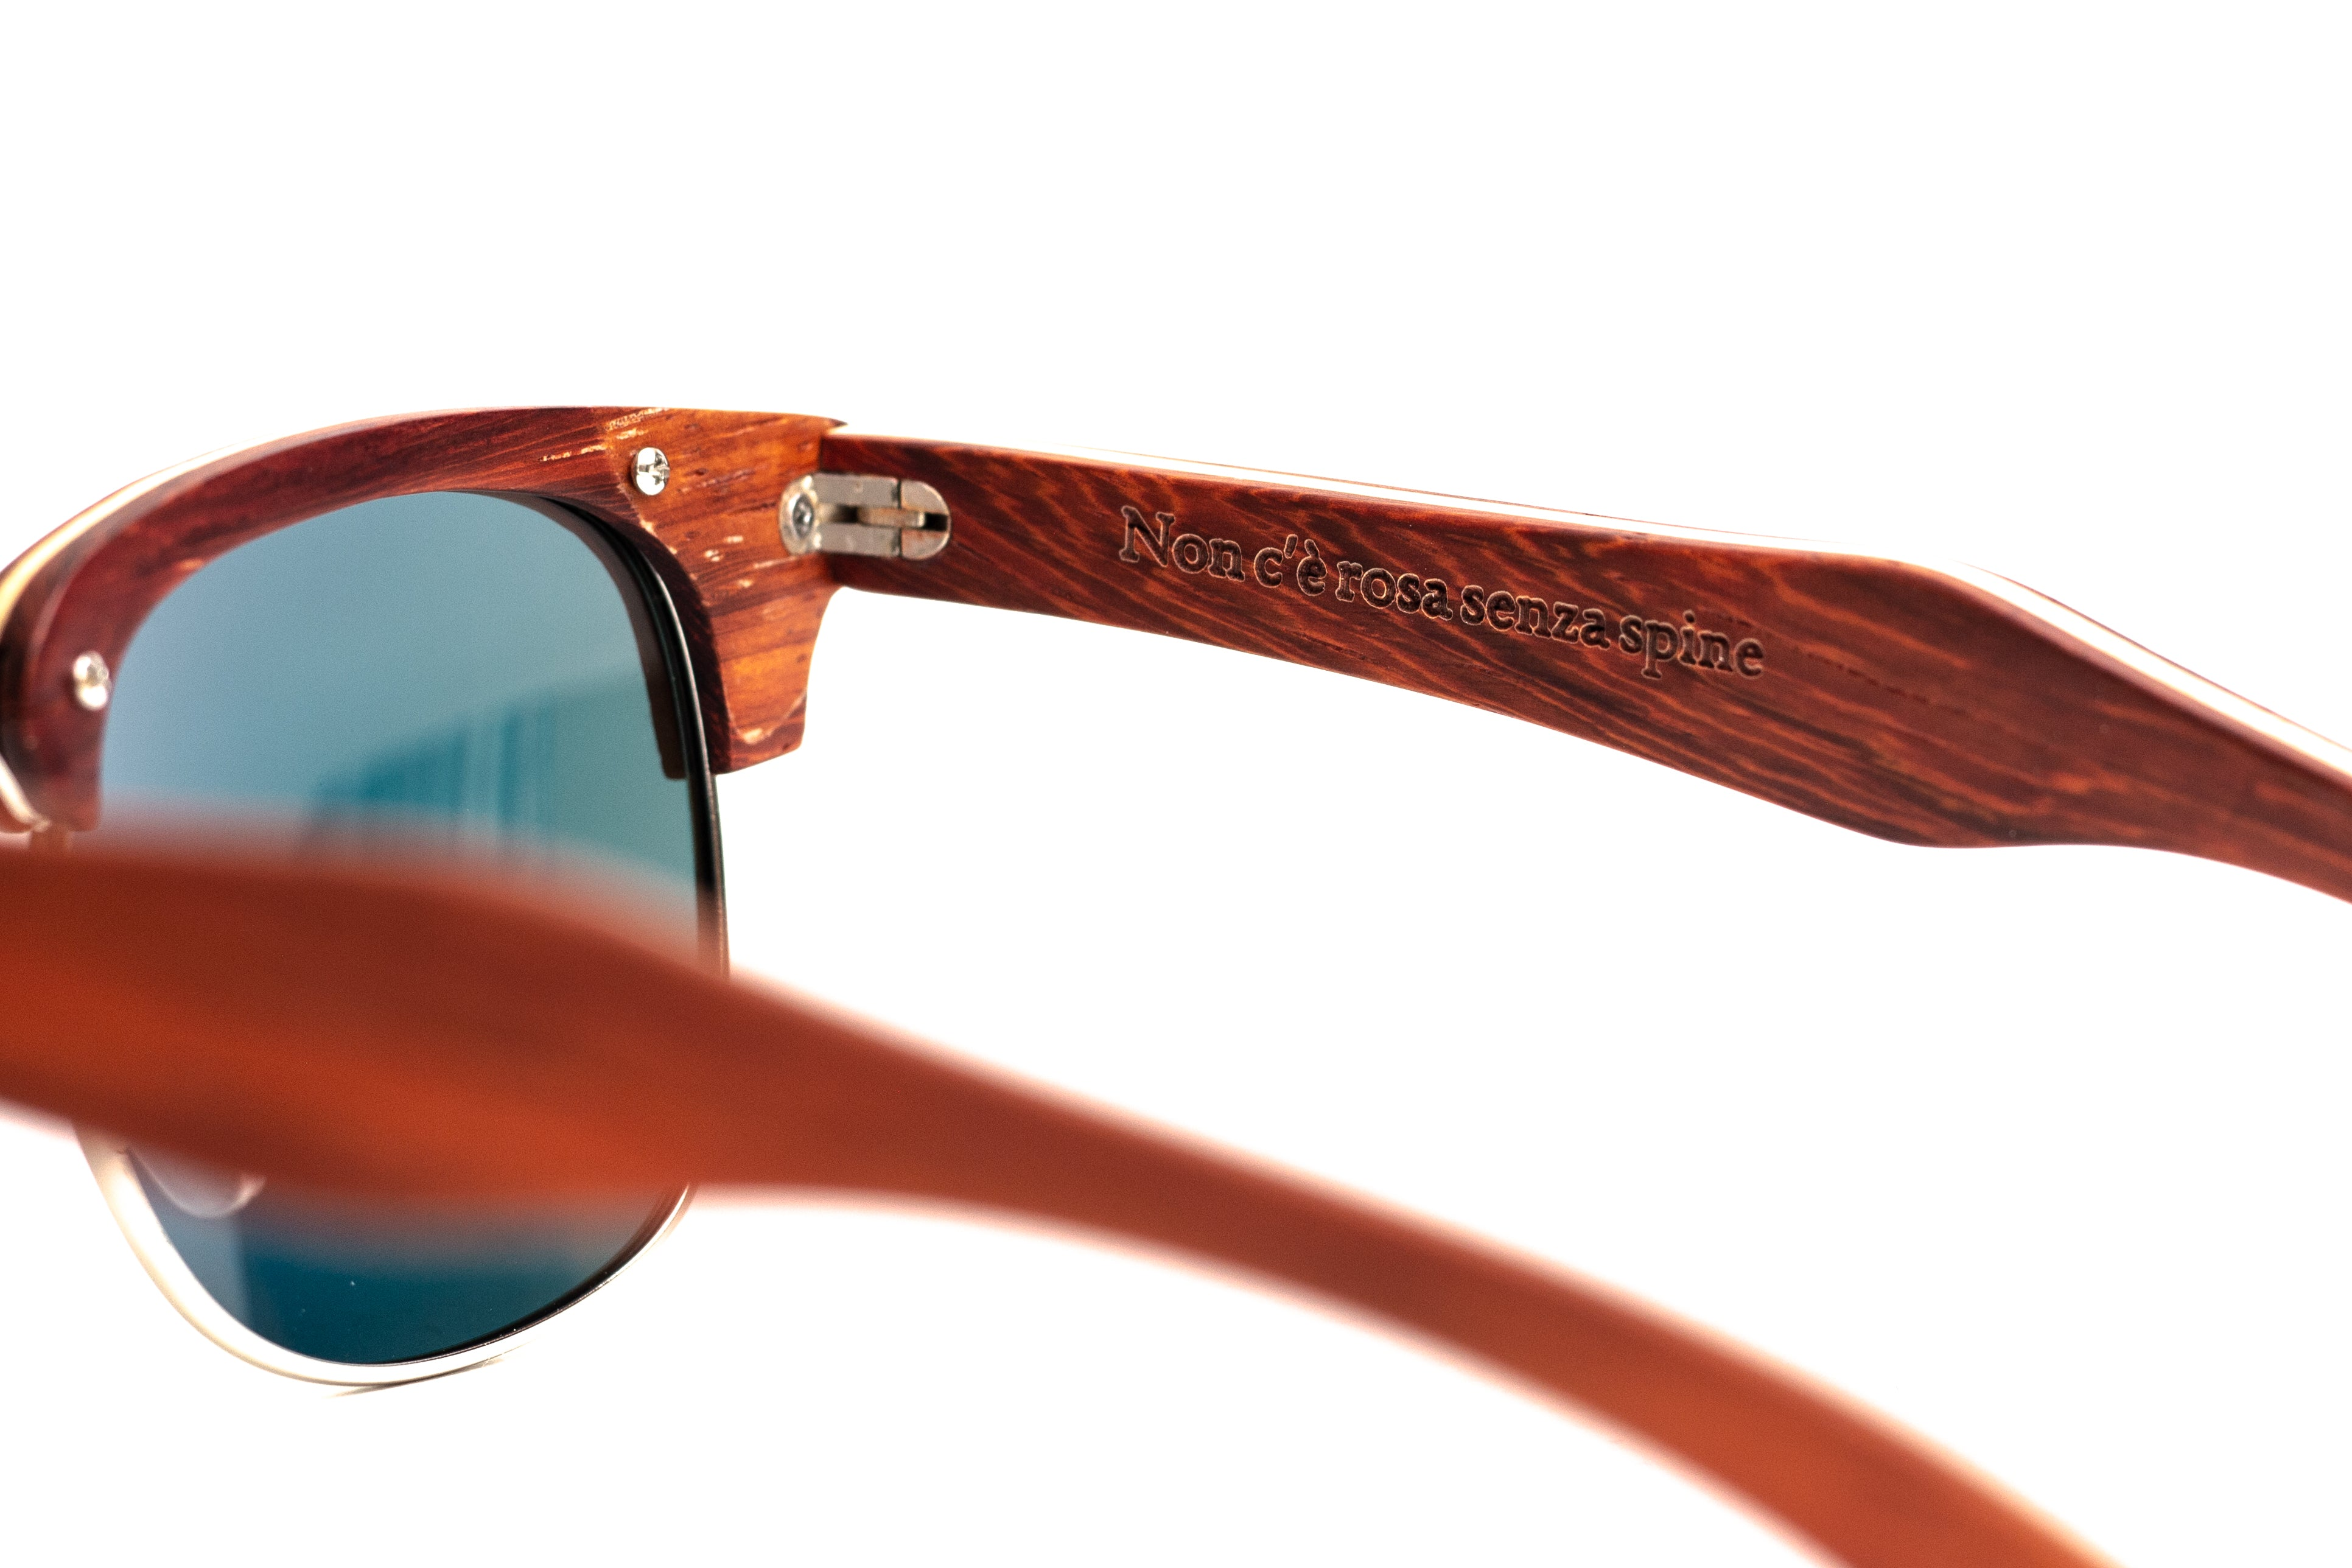 wooden sunglasses woodhoy rosa rossa